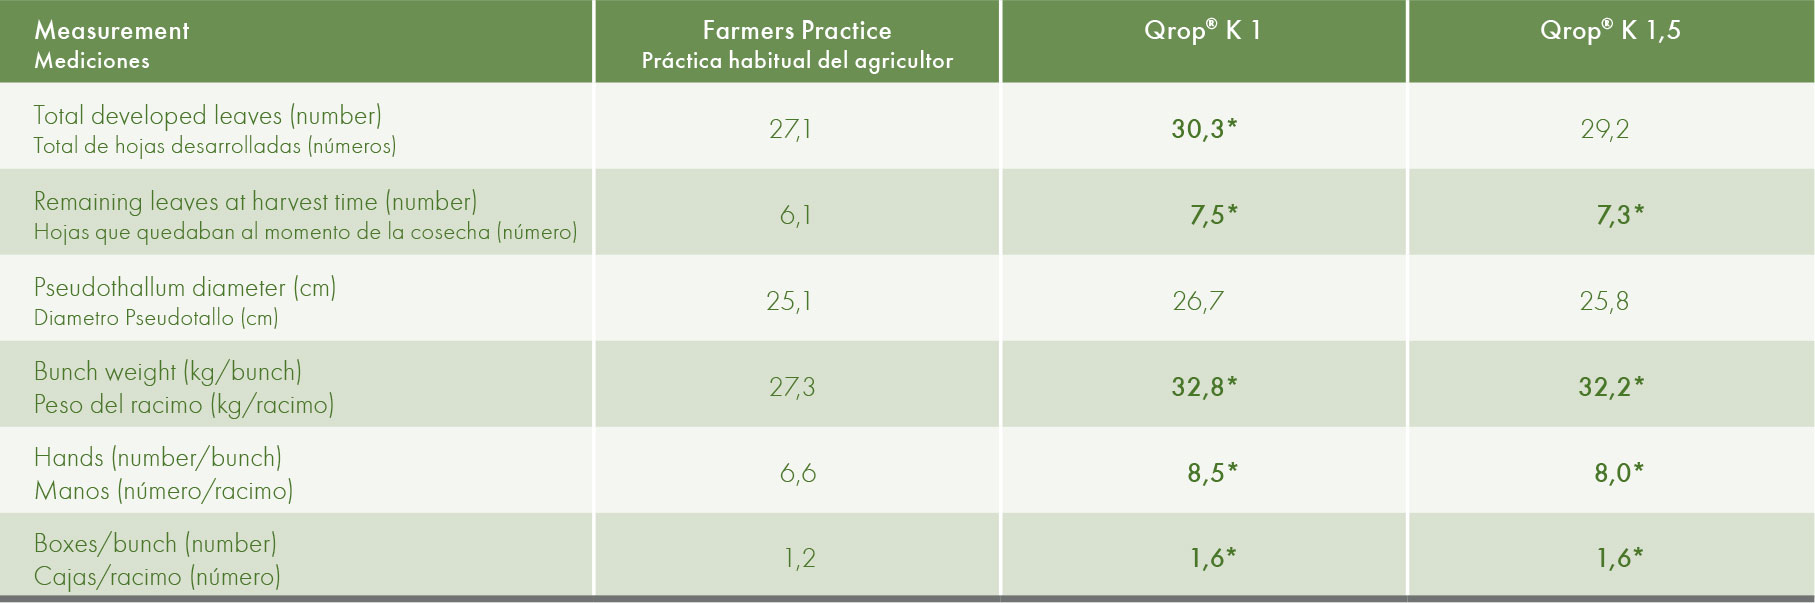 Plant development and yield parametes measured in the course of the trial and at harvest.